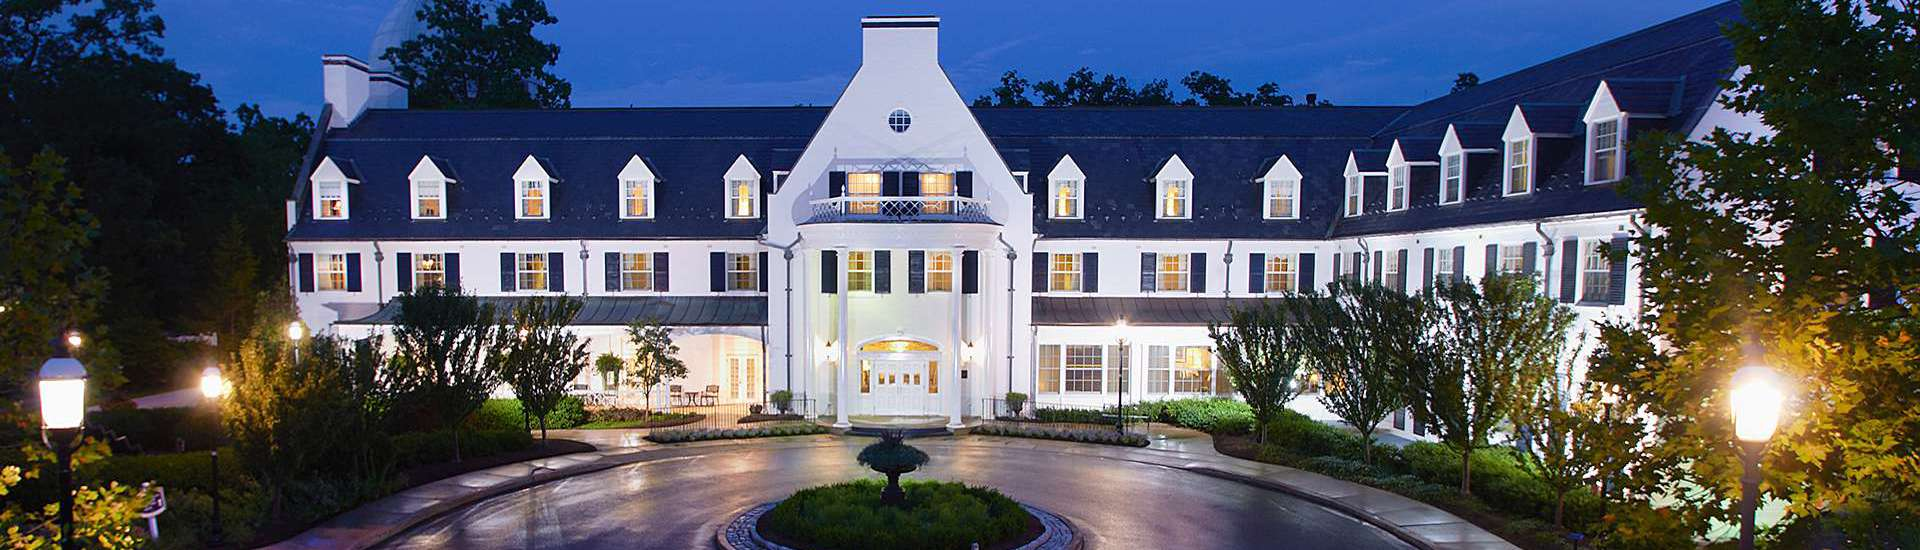 The Nittany Lion Inn The Official Site Luxury Hotel In